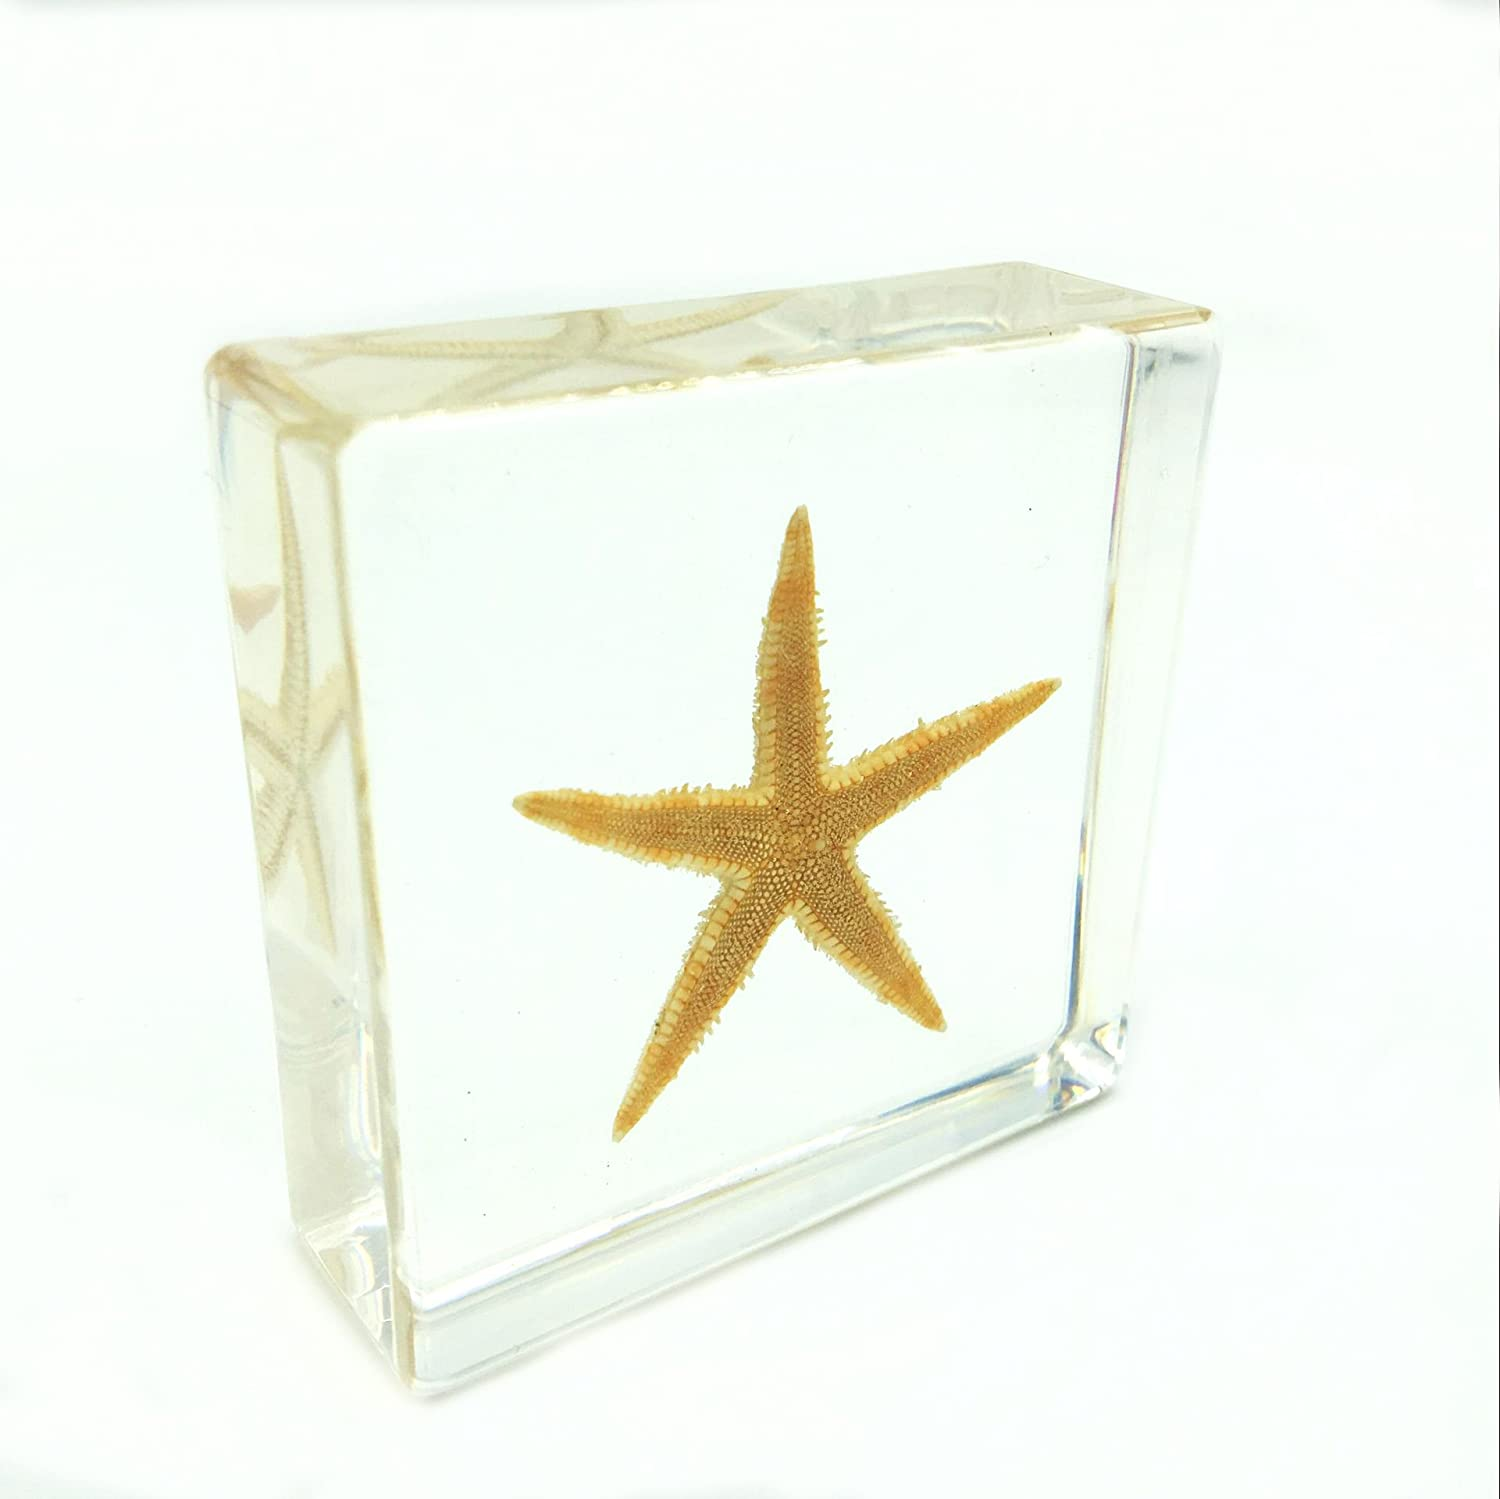 Starfish(Stelleroid)Paperweights Specimen for Science Education Paperweight for book for office for desk(3' x 3' x 1') Amazingbug